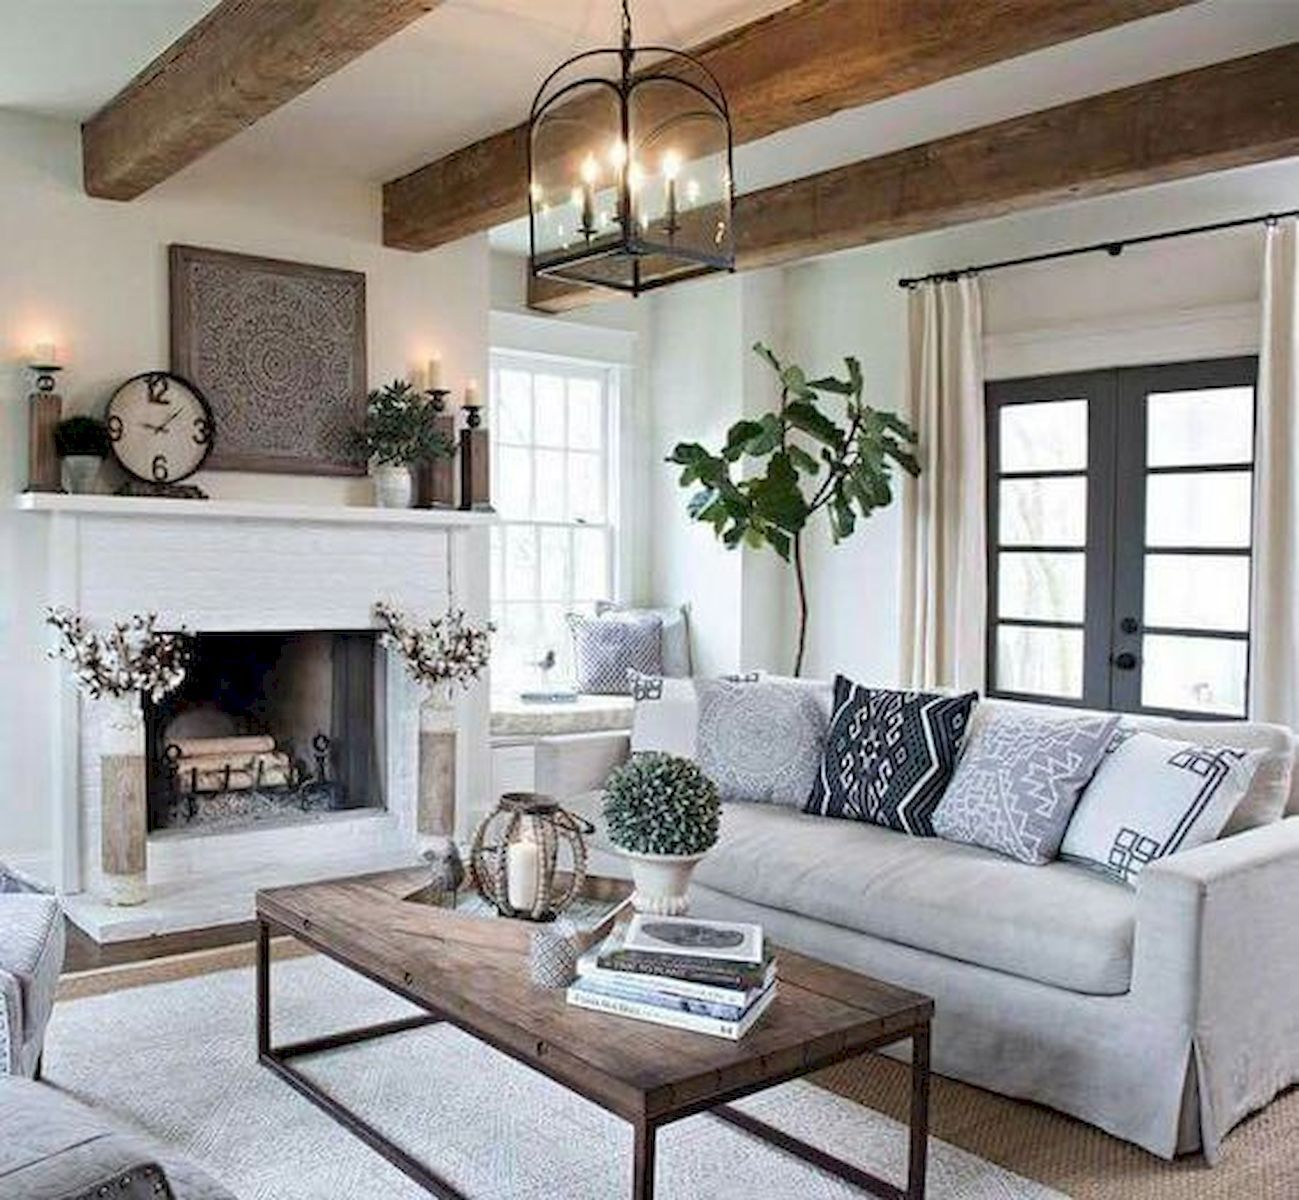 70 Elegant Modern Farmhouse Living Room Decor Ideas And Makeover 61 Farm House Living Room Modern Farmhouse Living Room Decor French Country Living Room